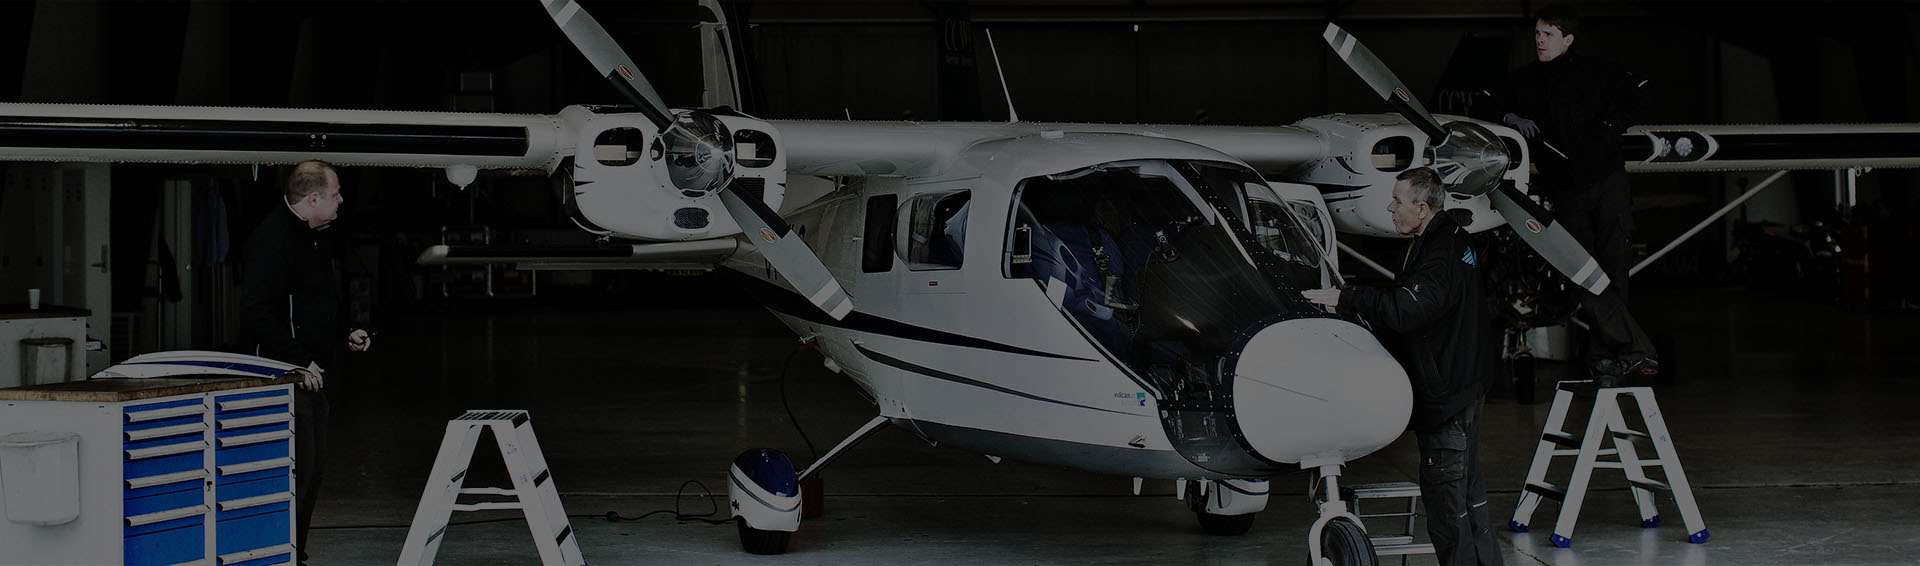 <h2>General Aviation Service have again the great pleasure to<br /> to invite you to an exciting Avionic- event.</h2><p>We will once again have representatives from Garmin.<br /> In addition, this year we also have a representative from BOSE Aviation.<br /> <br /> &lt;a href=&quot;http://gaservice.dk/avionic-seminar-eng&quot; class=&quot;button&quot; style=&quot;background-color: rgb(0, 158, 224);&quot;&gt;Sign up for our free avionic seminar&lt;/a&gt;</p>